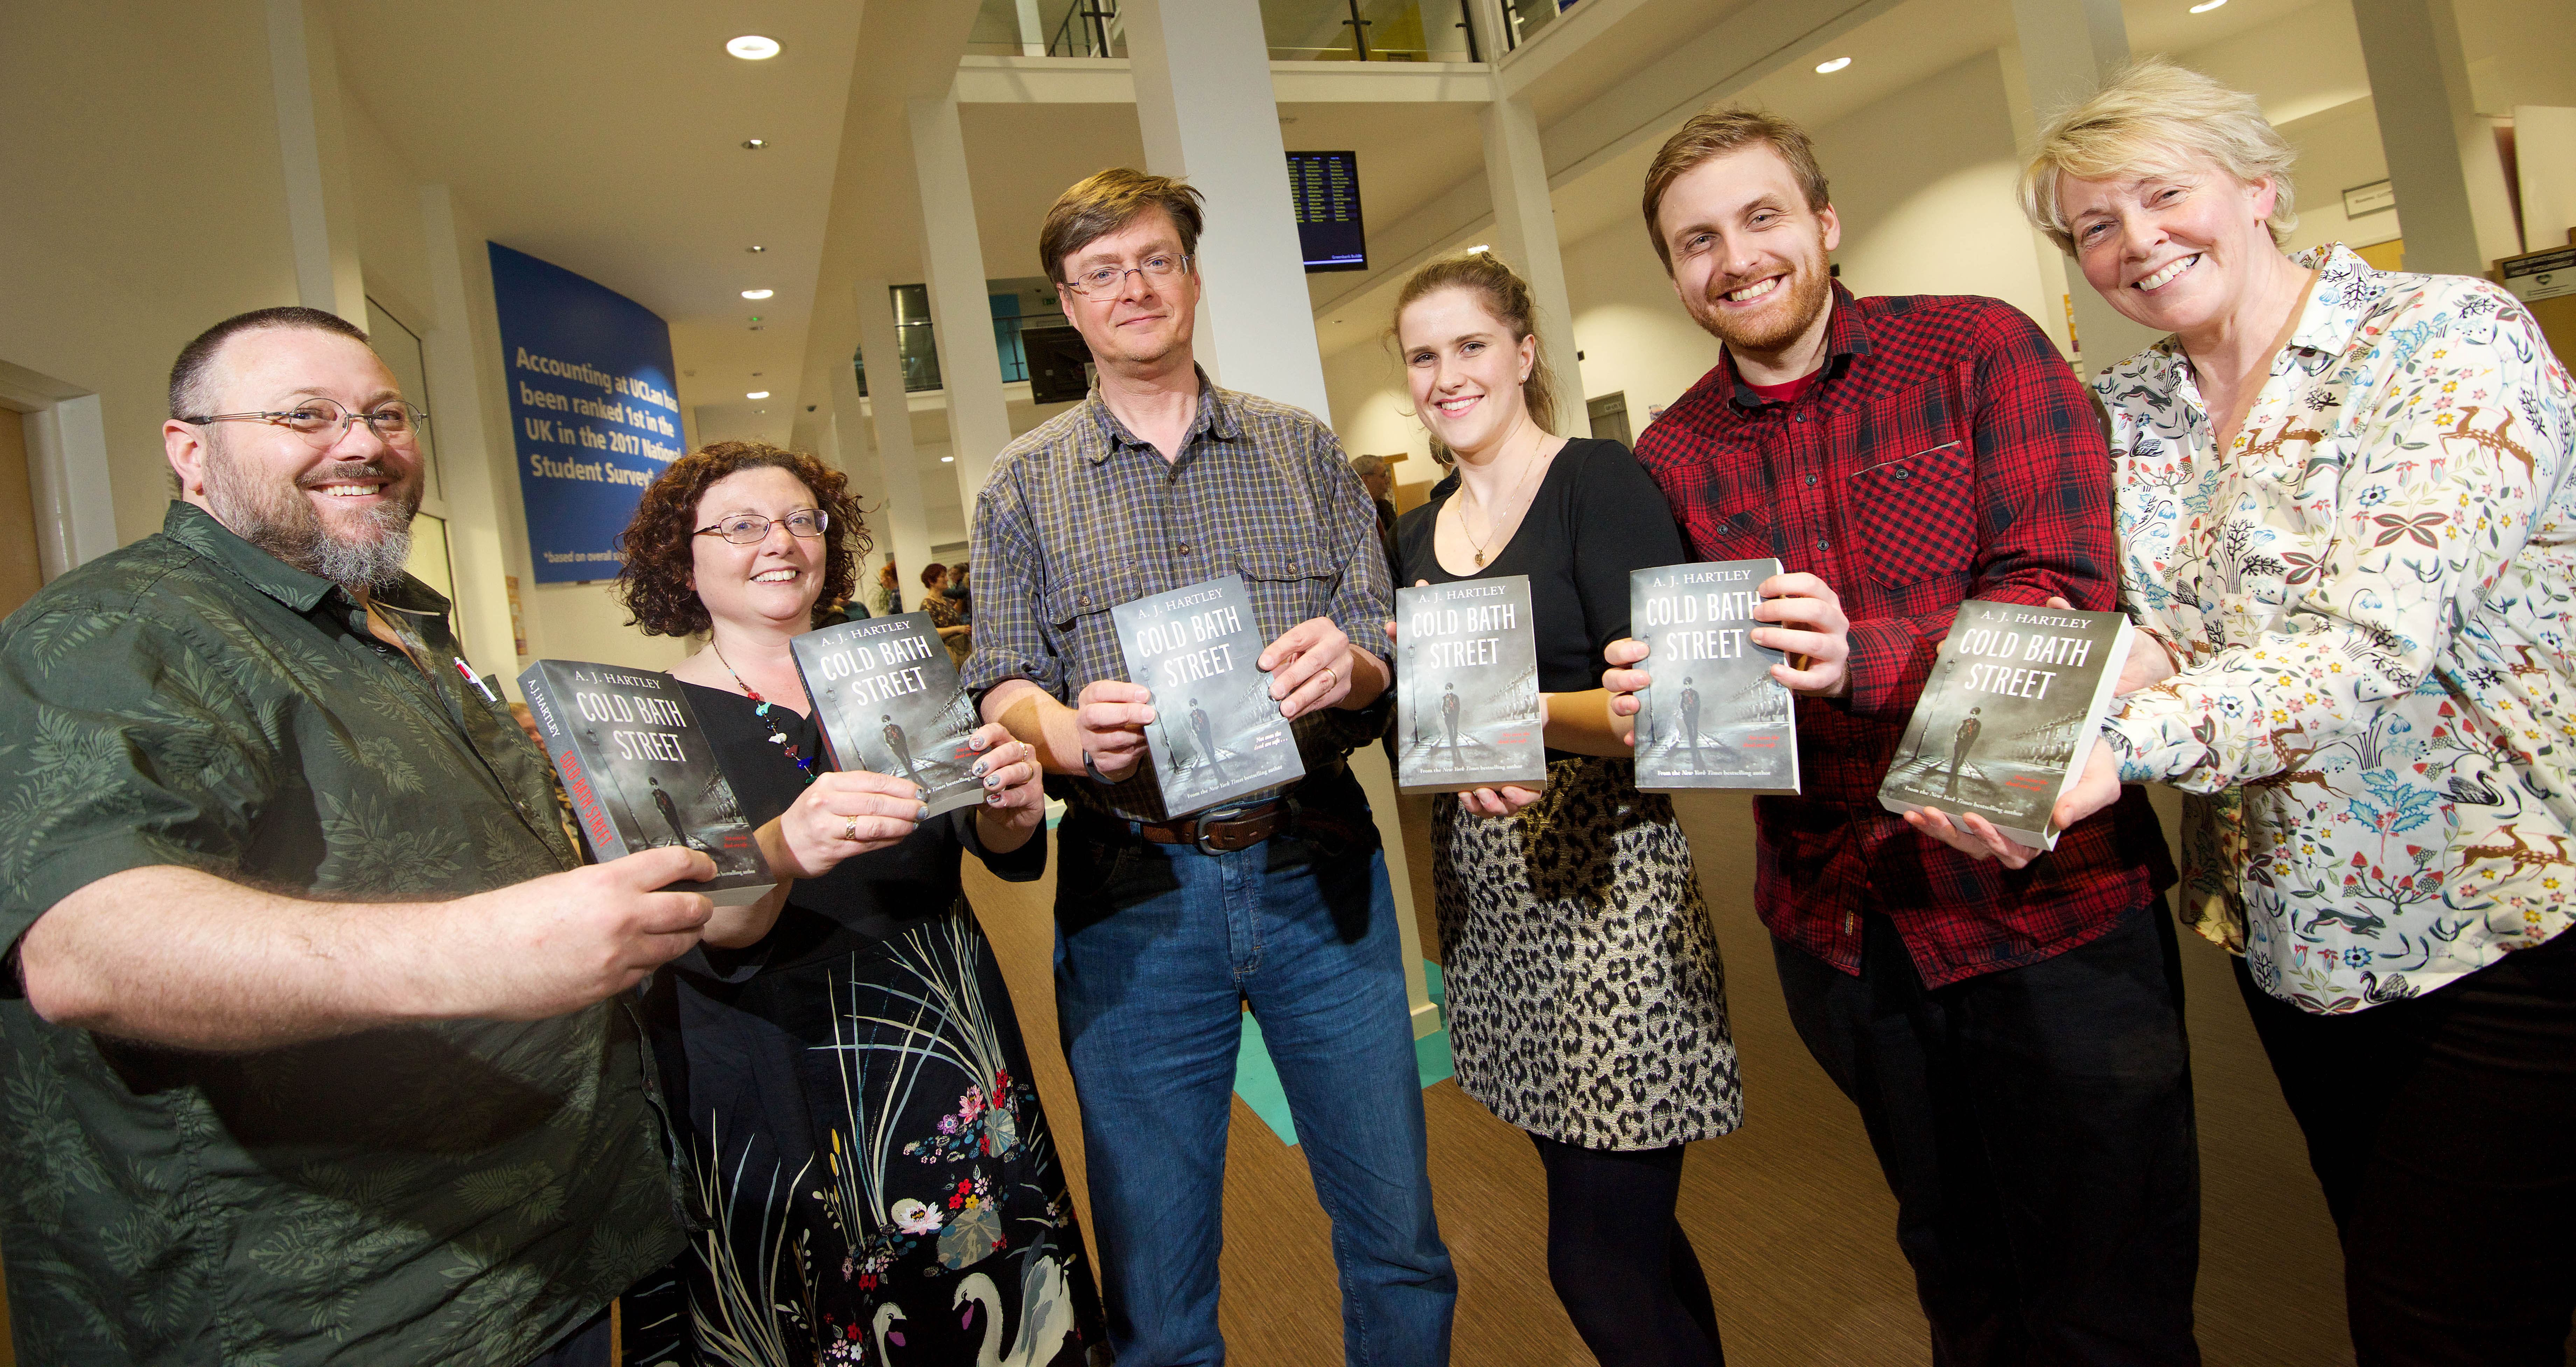 The Cold Bath Street launch - Wayne Noble, lecturer in digital publishing, UCLan Associate Professor of Publishing and Head of the Publishing House Debbie Williams, A.J. Hartley, Publishing graduates Brionee Fenlon and Sam Johnson and MA Fine Art student Janet Pickering